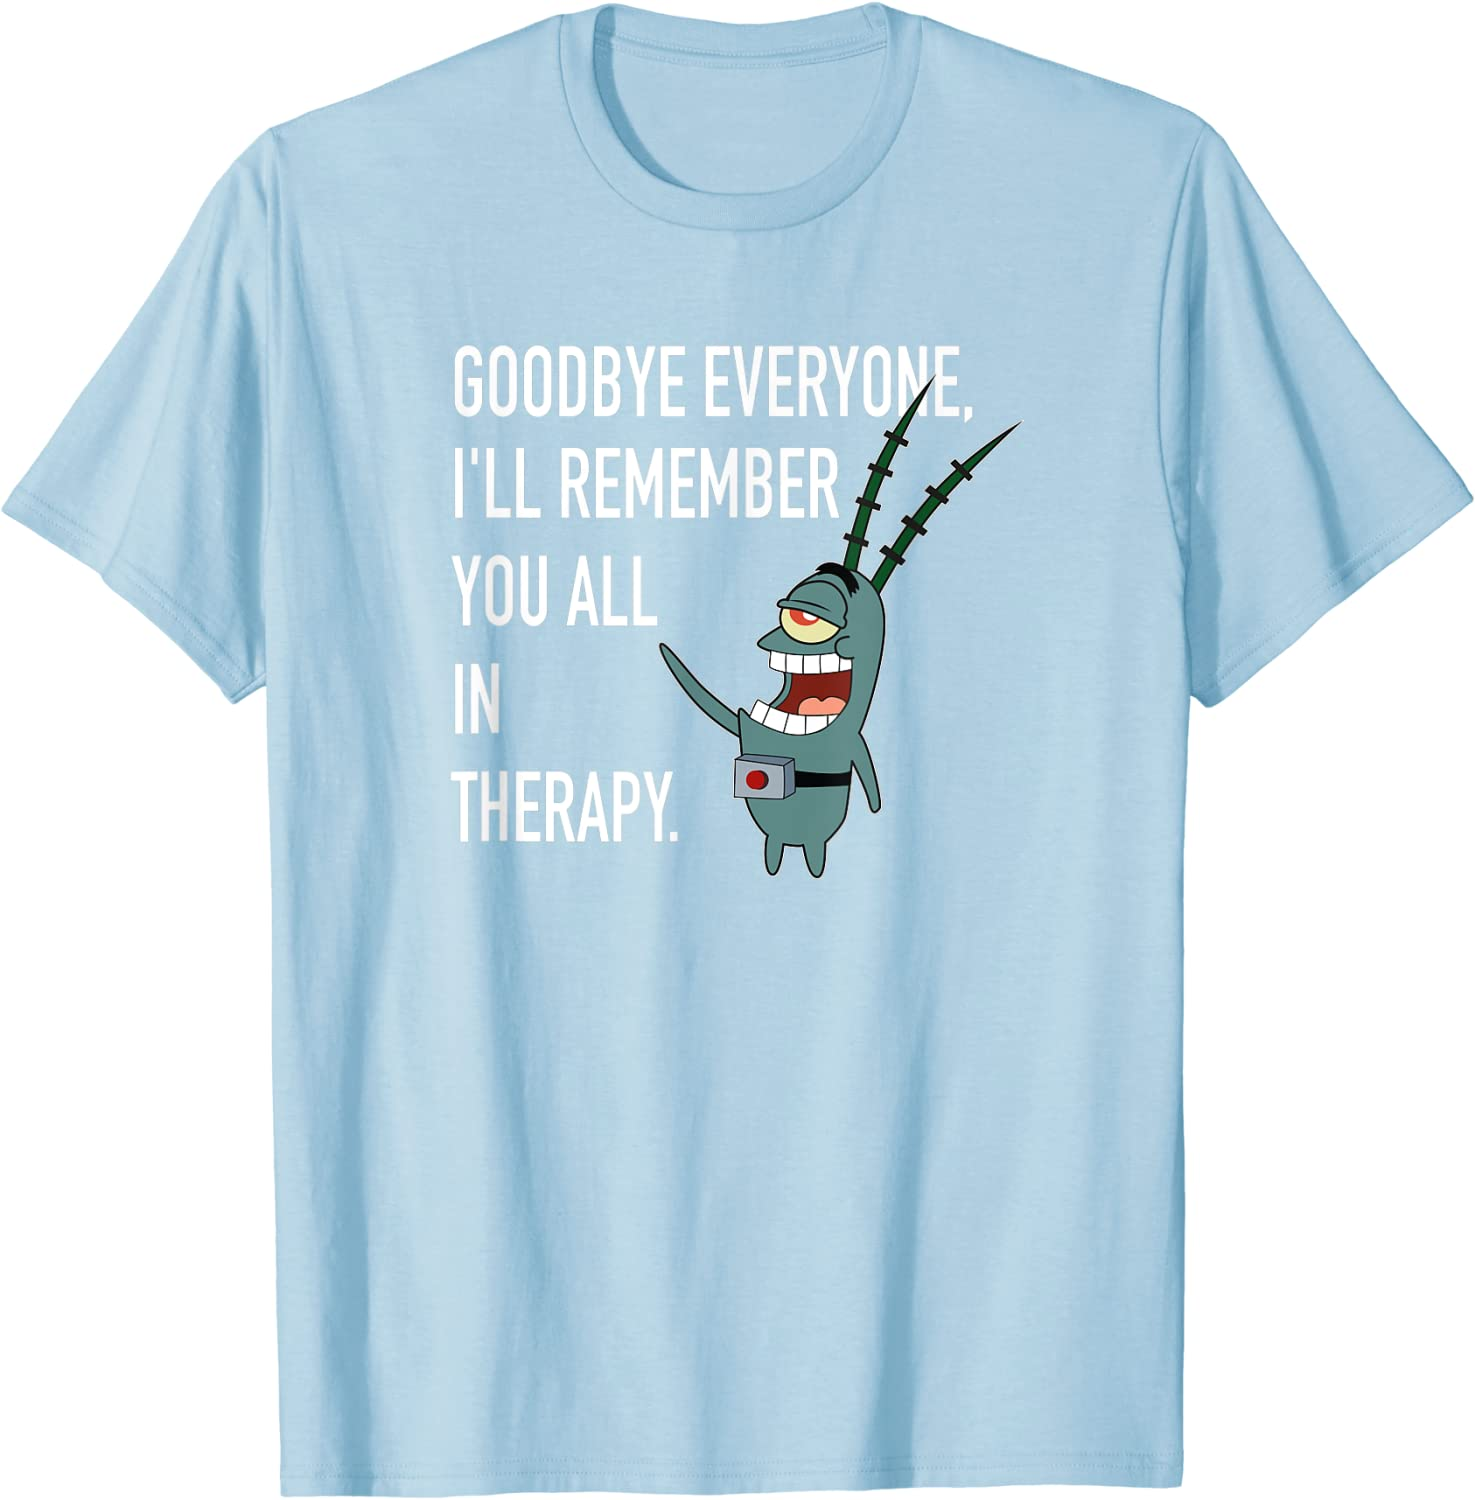 Mademark x SpongeBob SquarePants - Plankton - I'll Remember You All in Therapy T-Shirt